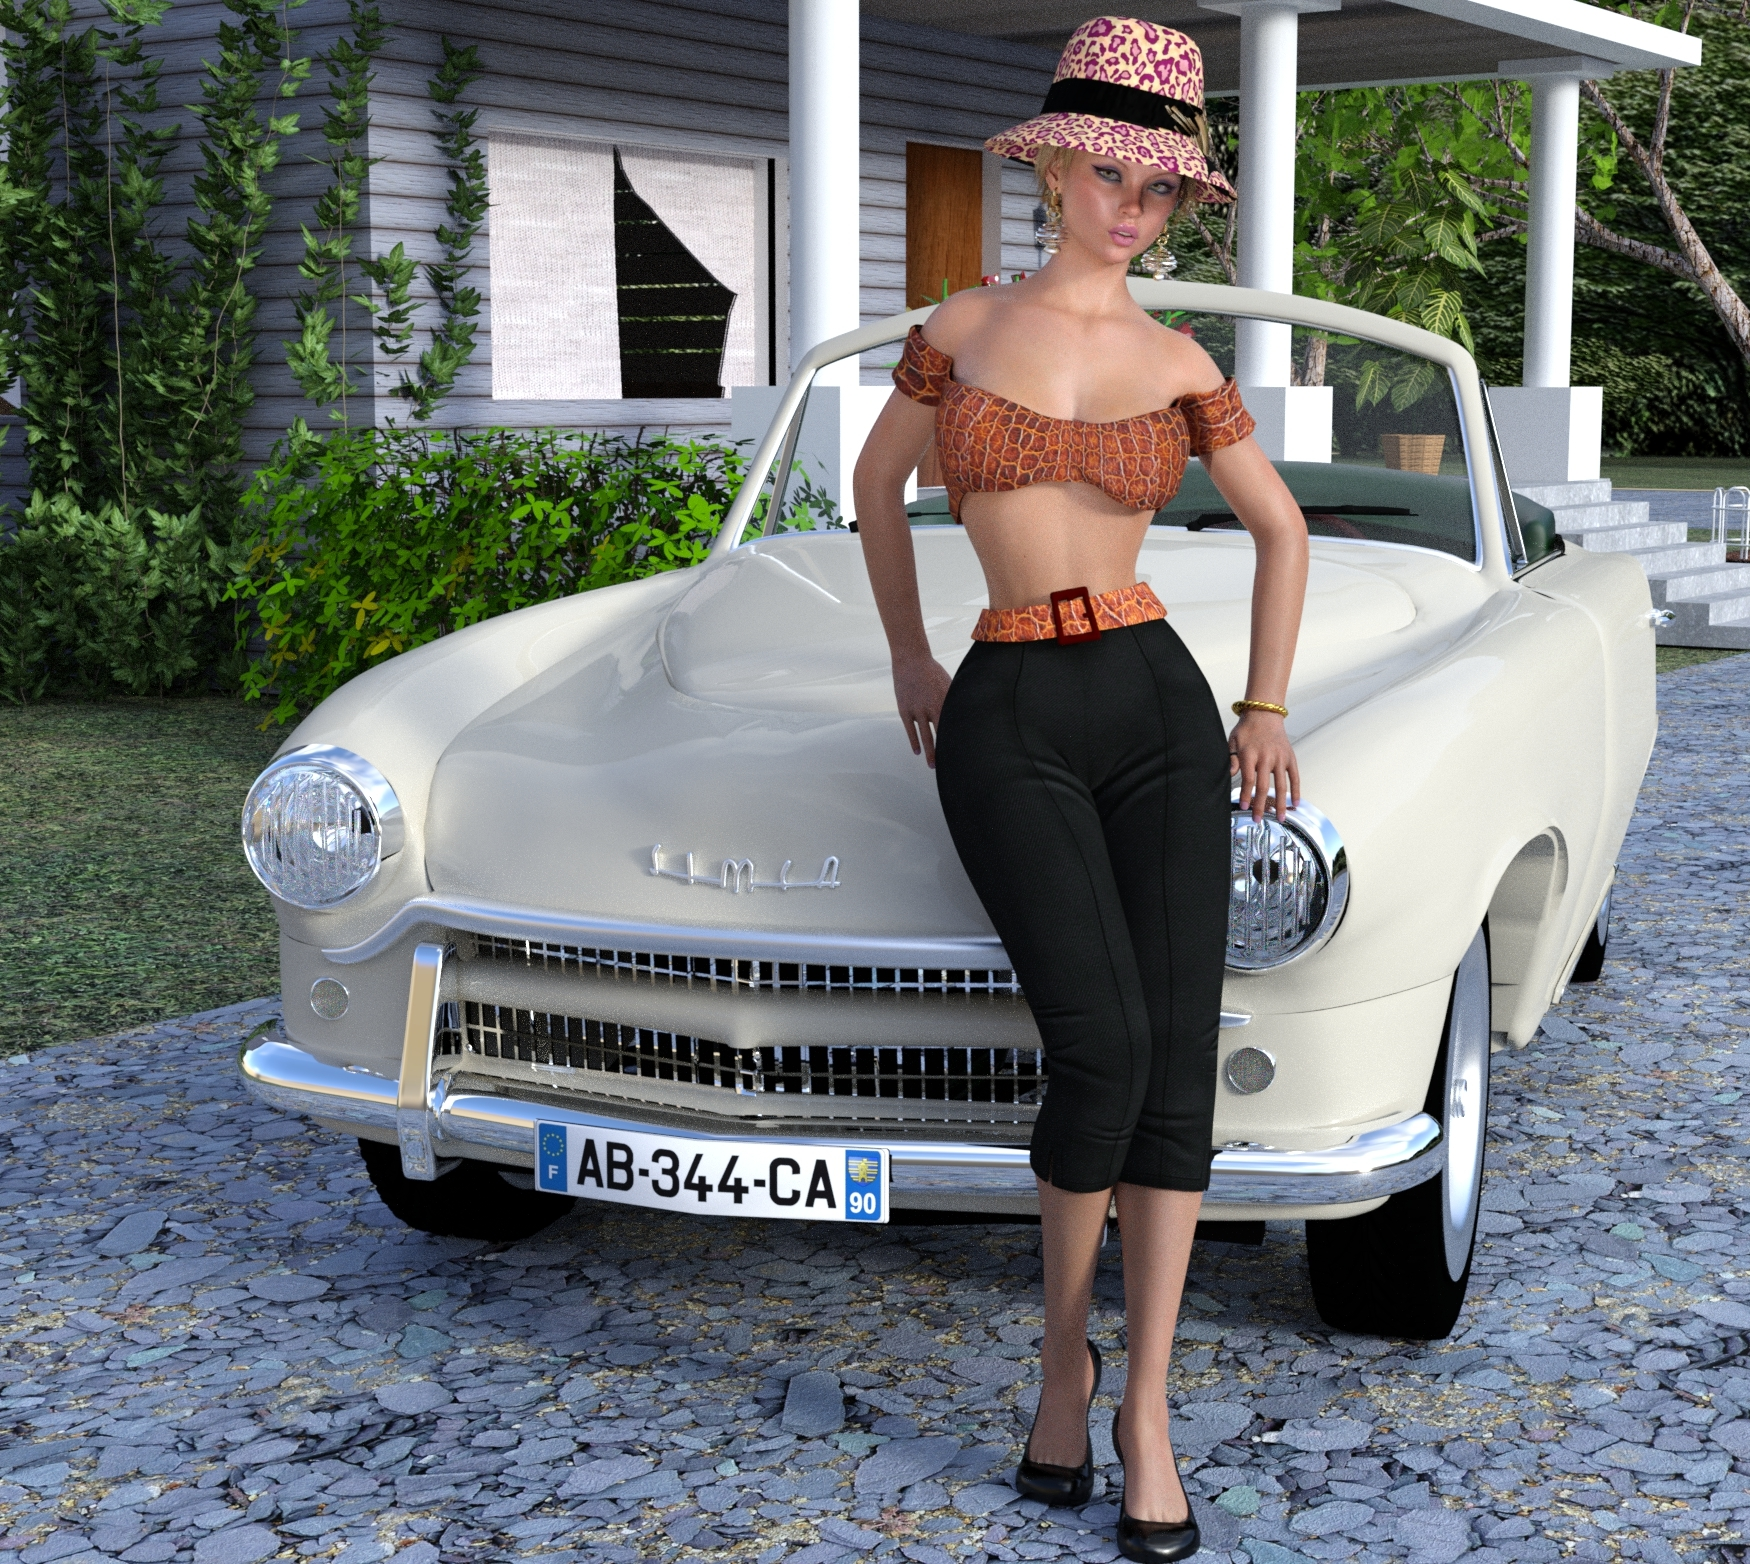 Simca Bardot Inspired; 1954 Simca by Lucien Lilipp